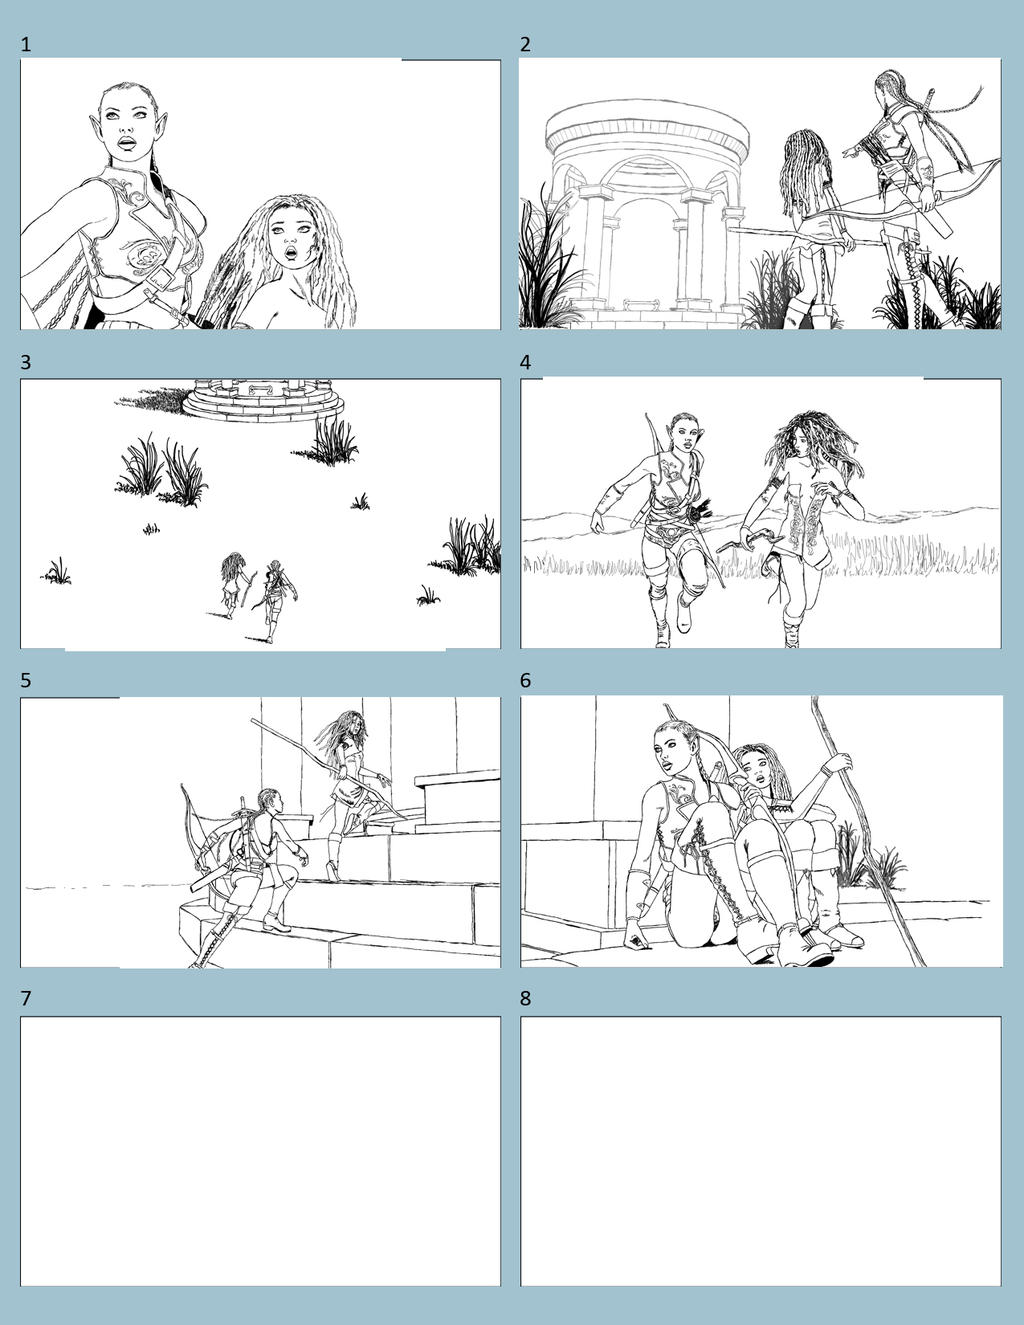 ... Storyboard Project 1 By Bad Dragon